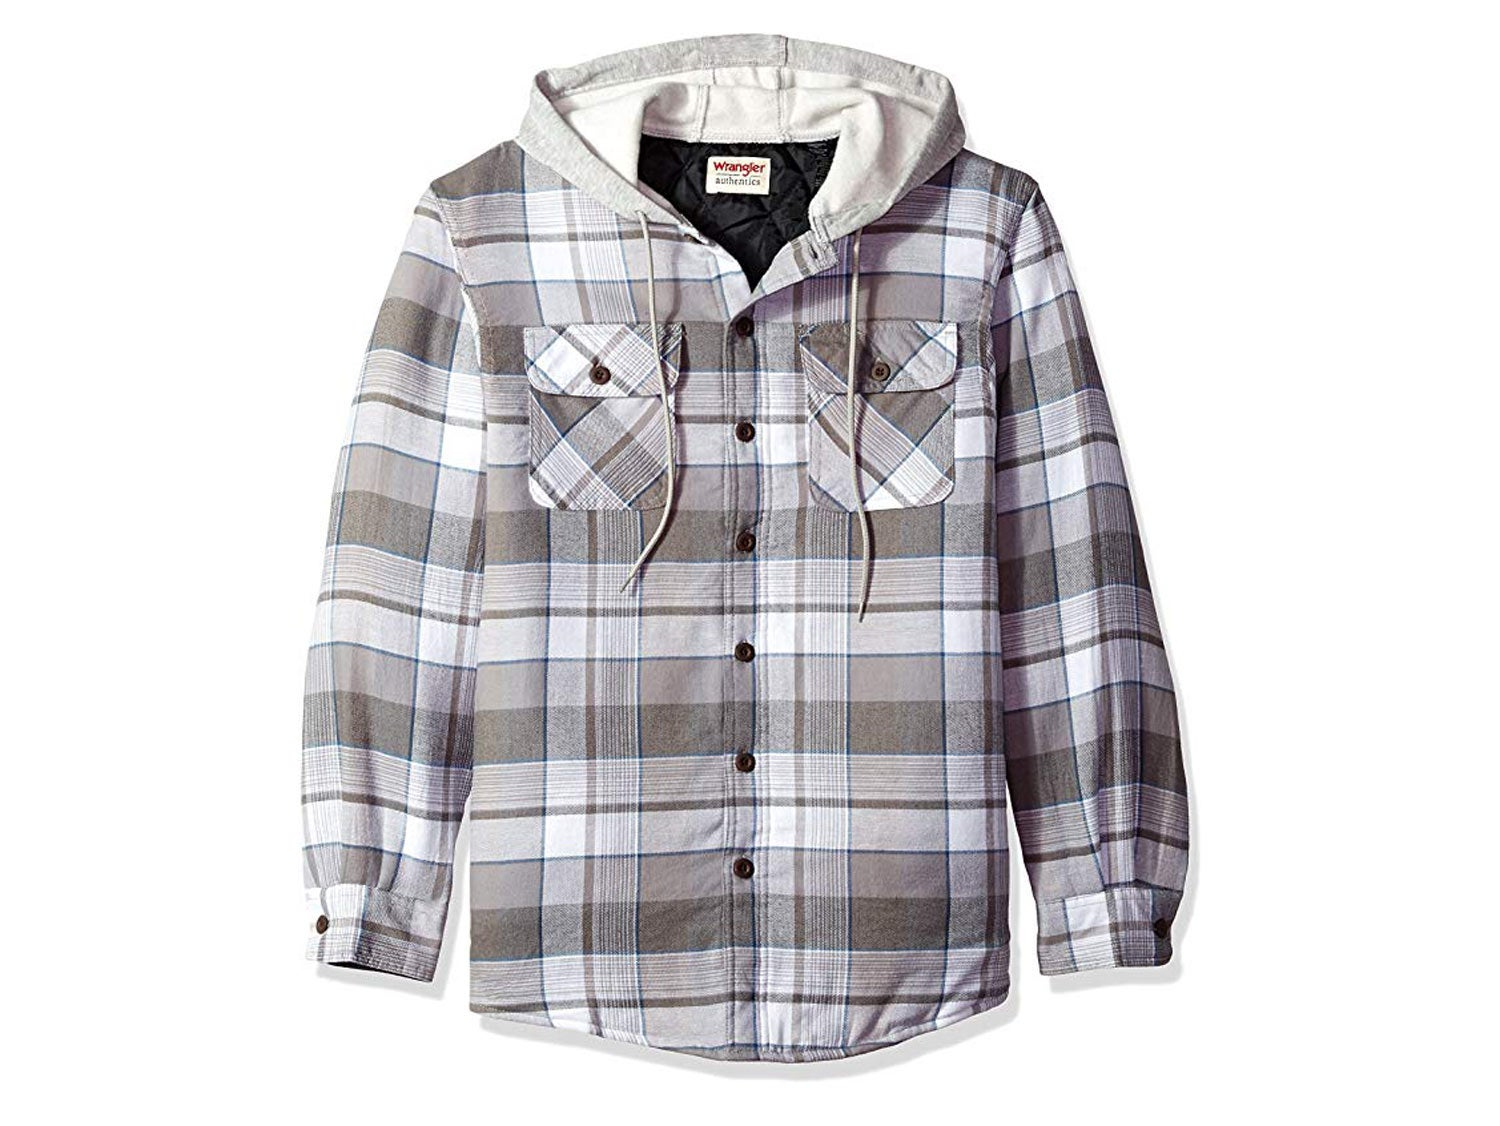 Wrangler Authentics Men's Long Sleeve Quilted Line Flannel Jacket with Hood